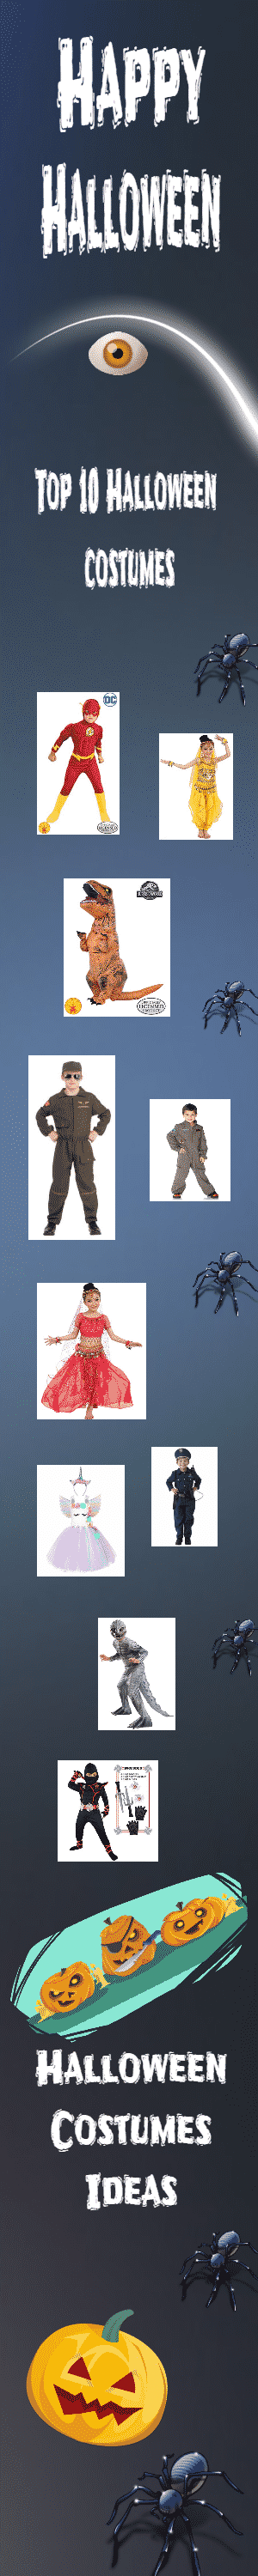 The Top 10 Halloween Costumes